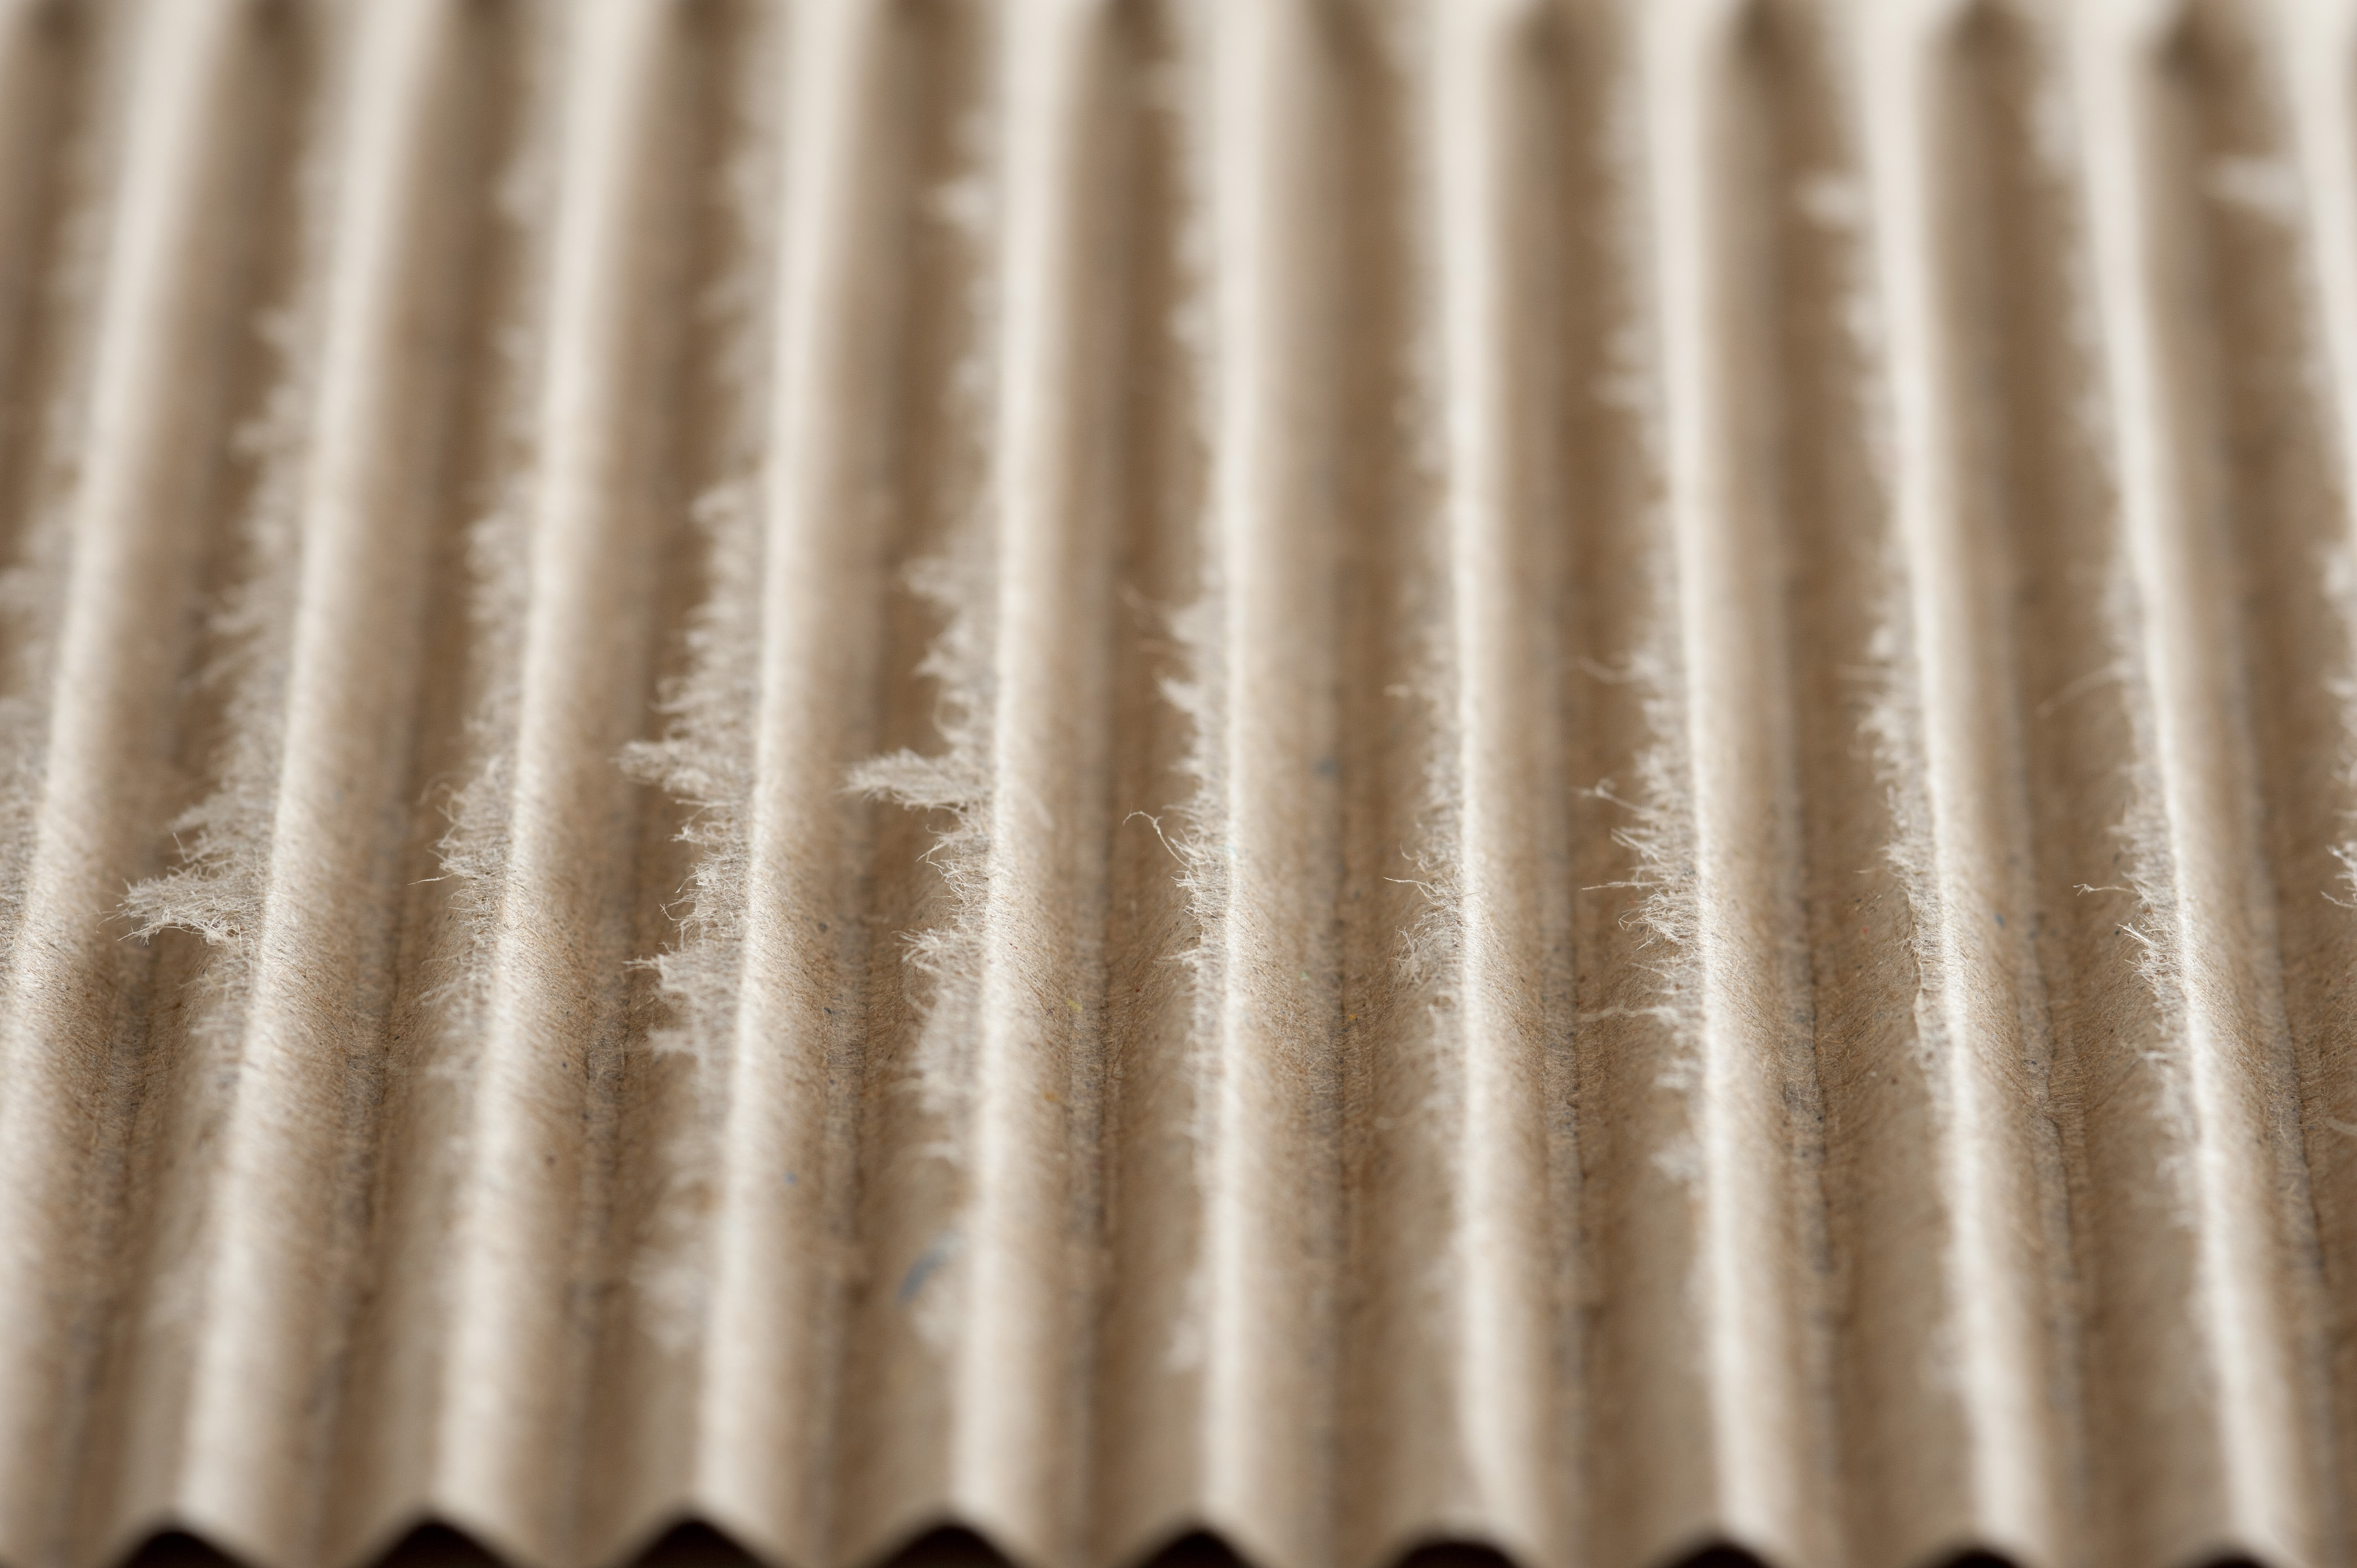 Recycled corrugated brown paper for packaging in a full frame oblique angle view